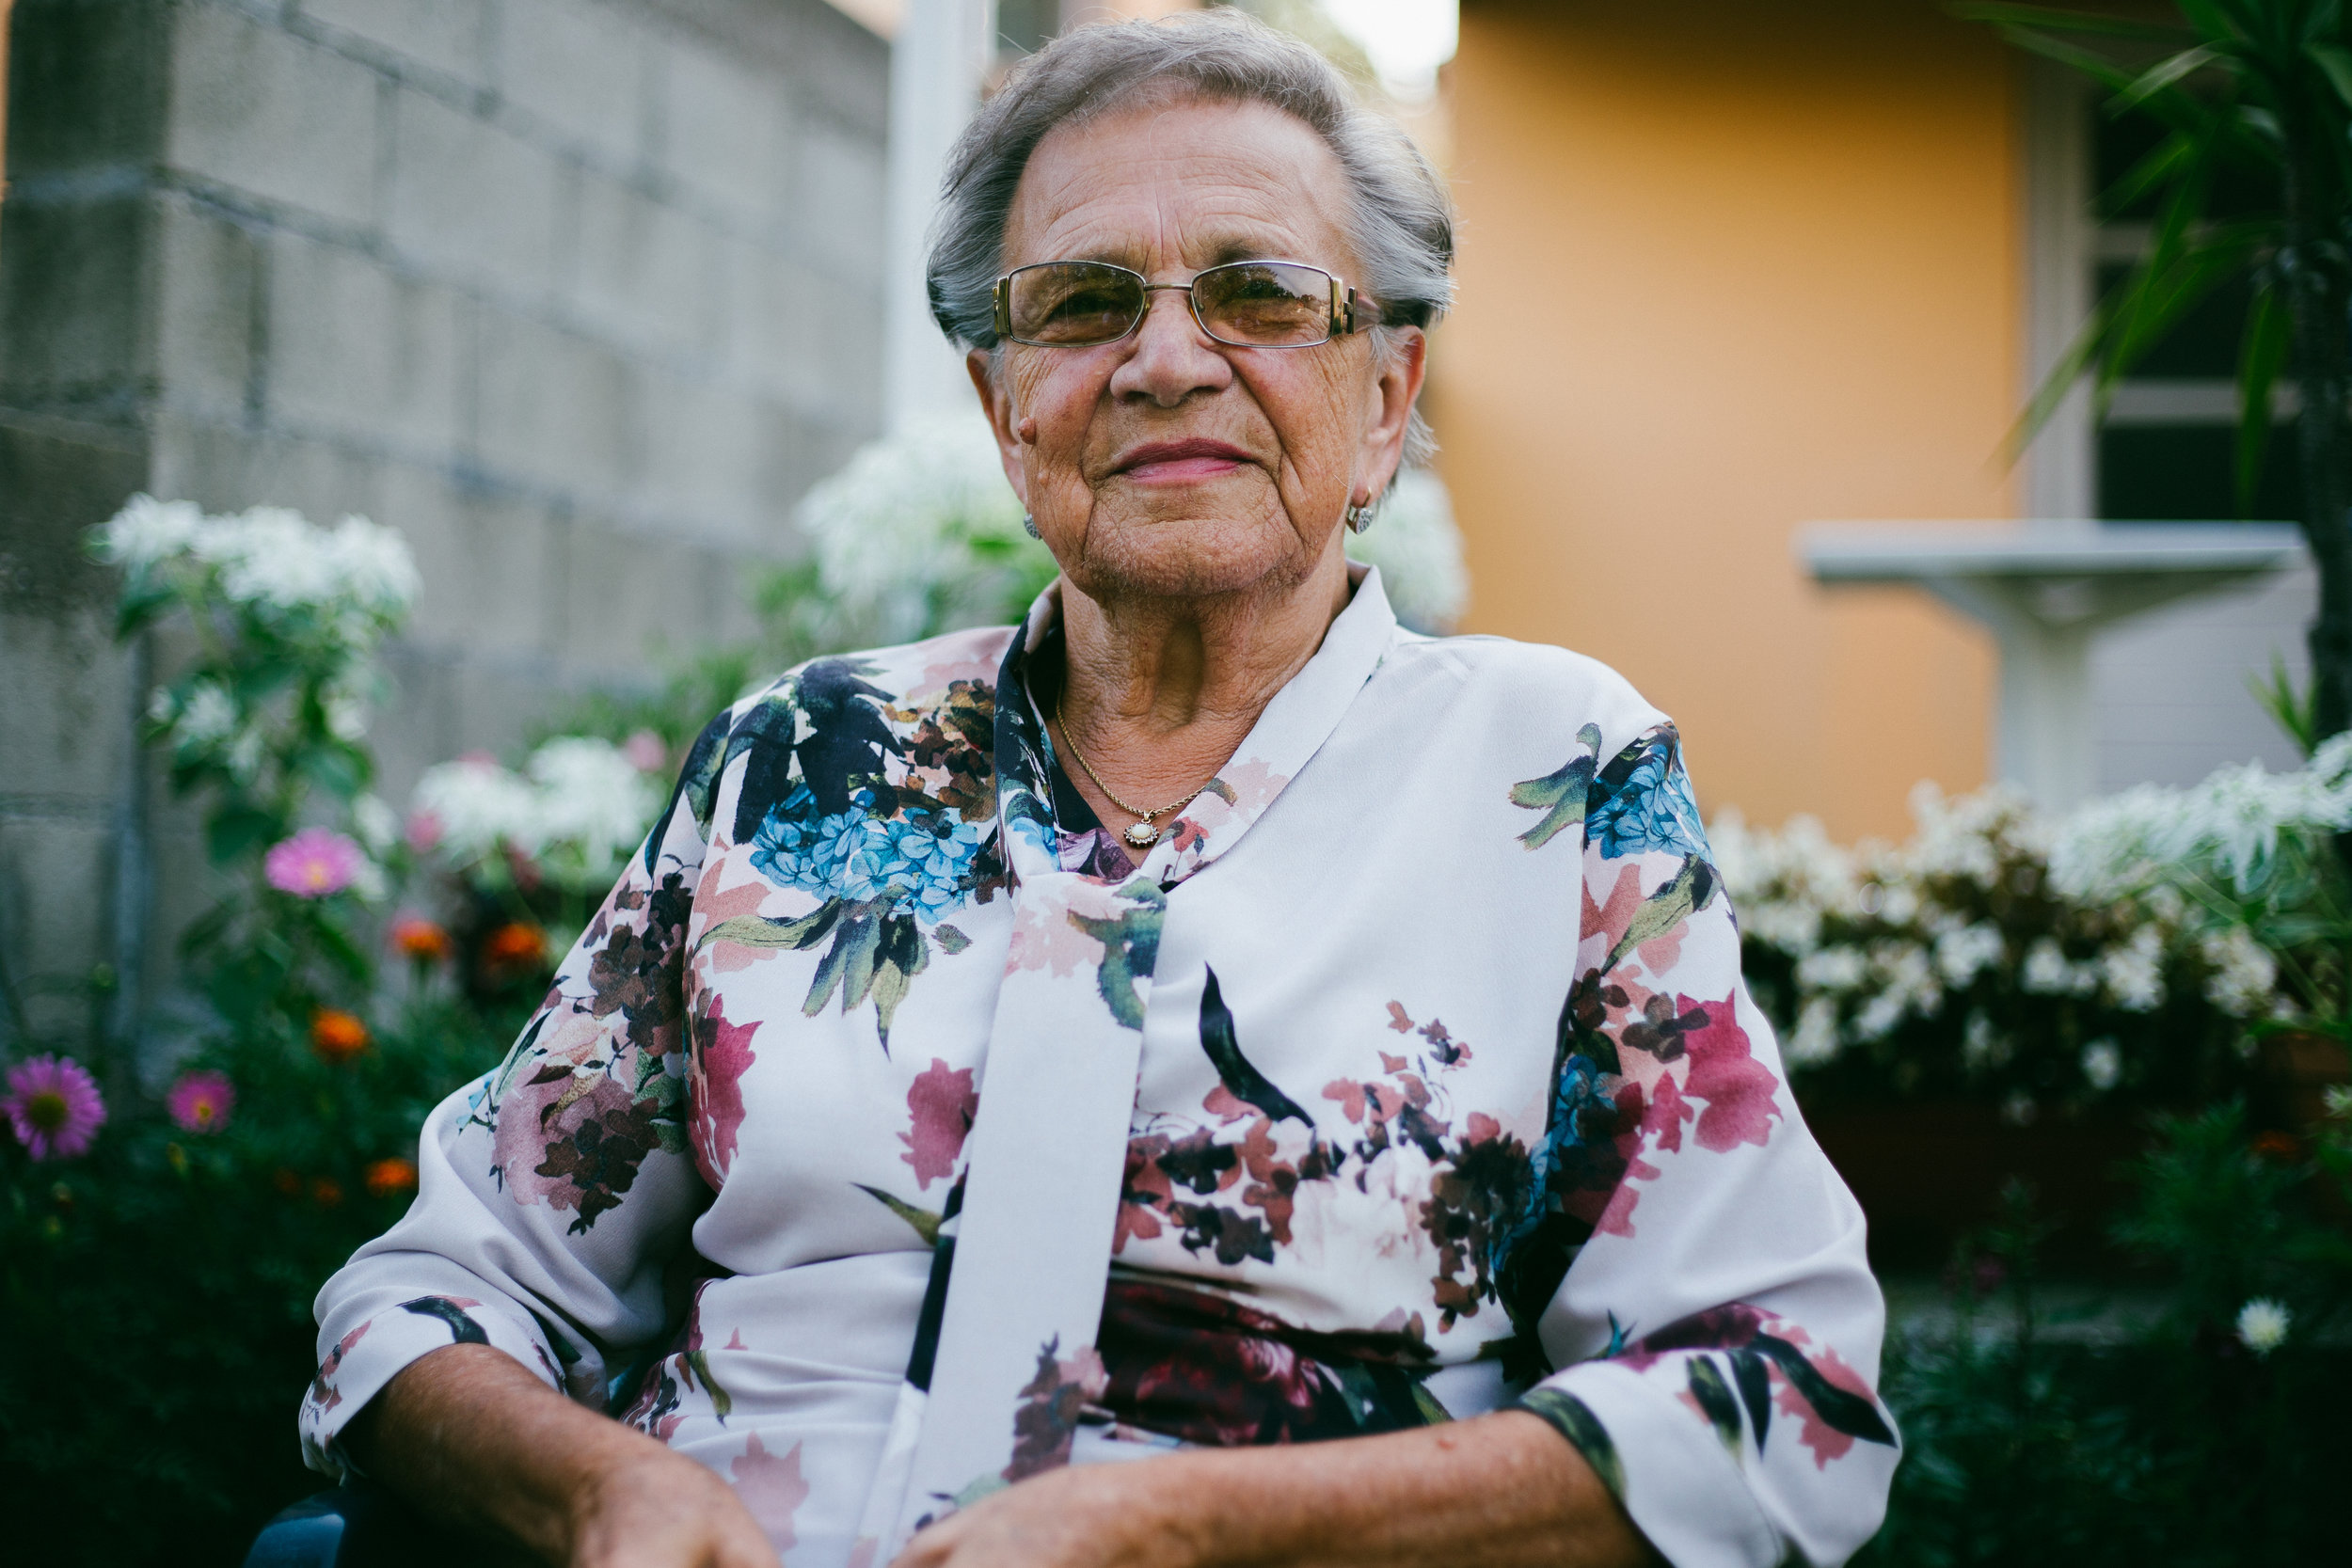 Photo of smiling older adult woman by Unsplash.